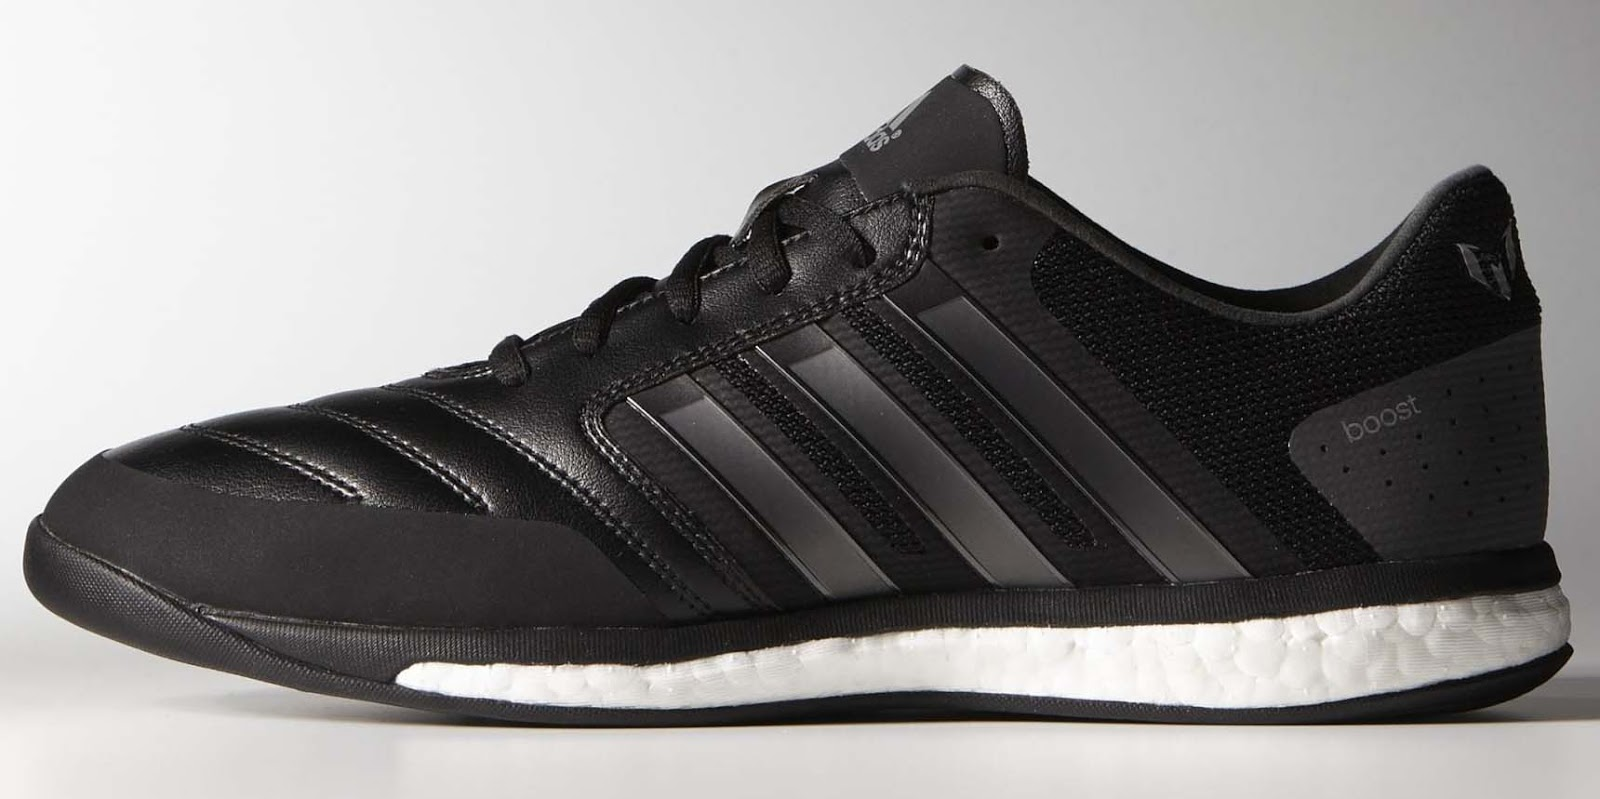 Adidas Basketball Shoes Black And Silver